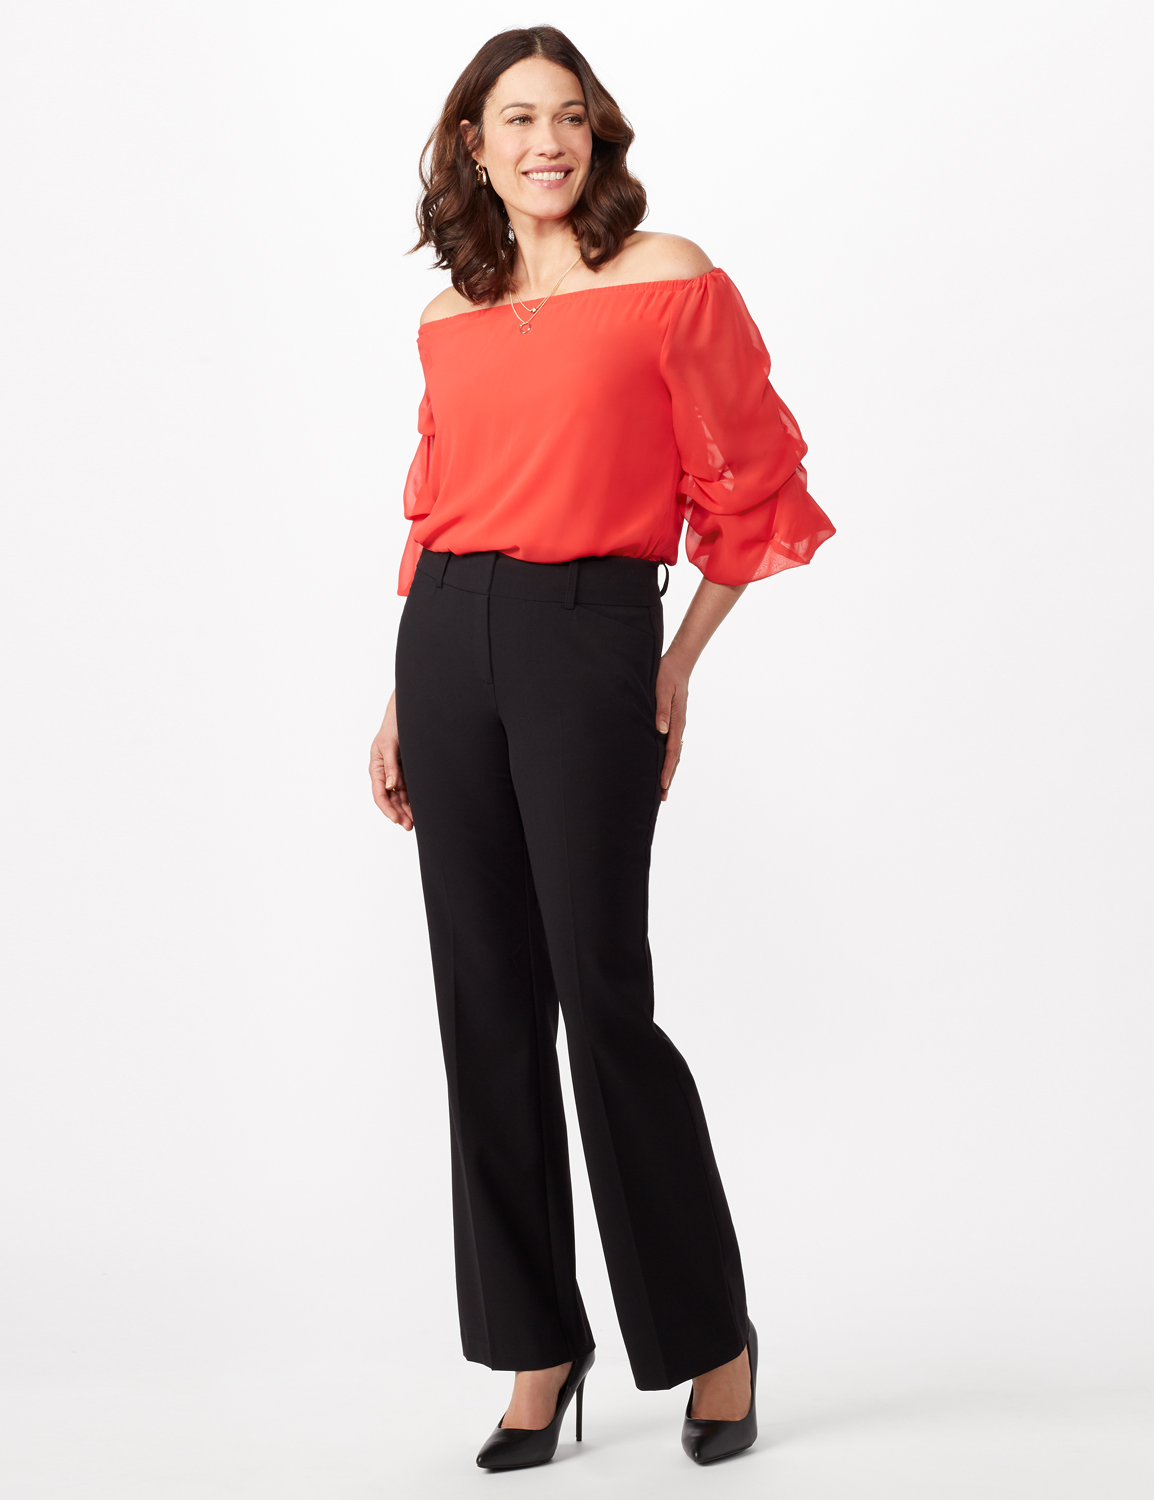 Secret Agent Trouser with Cateye Pockets and Zipper -Black - Front